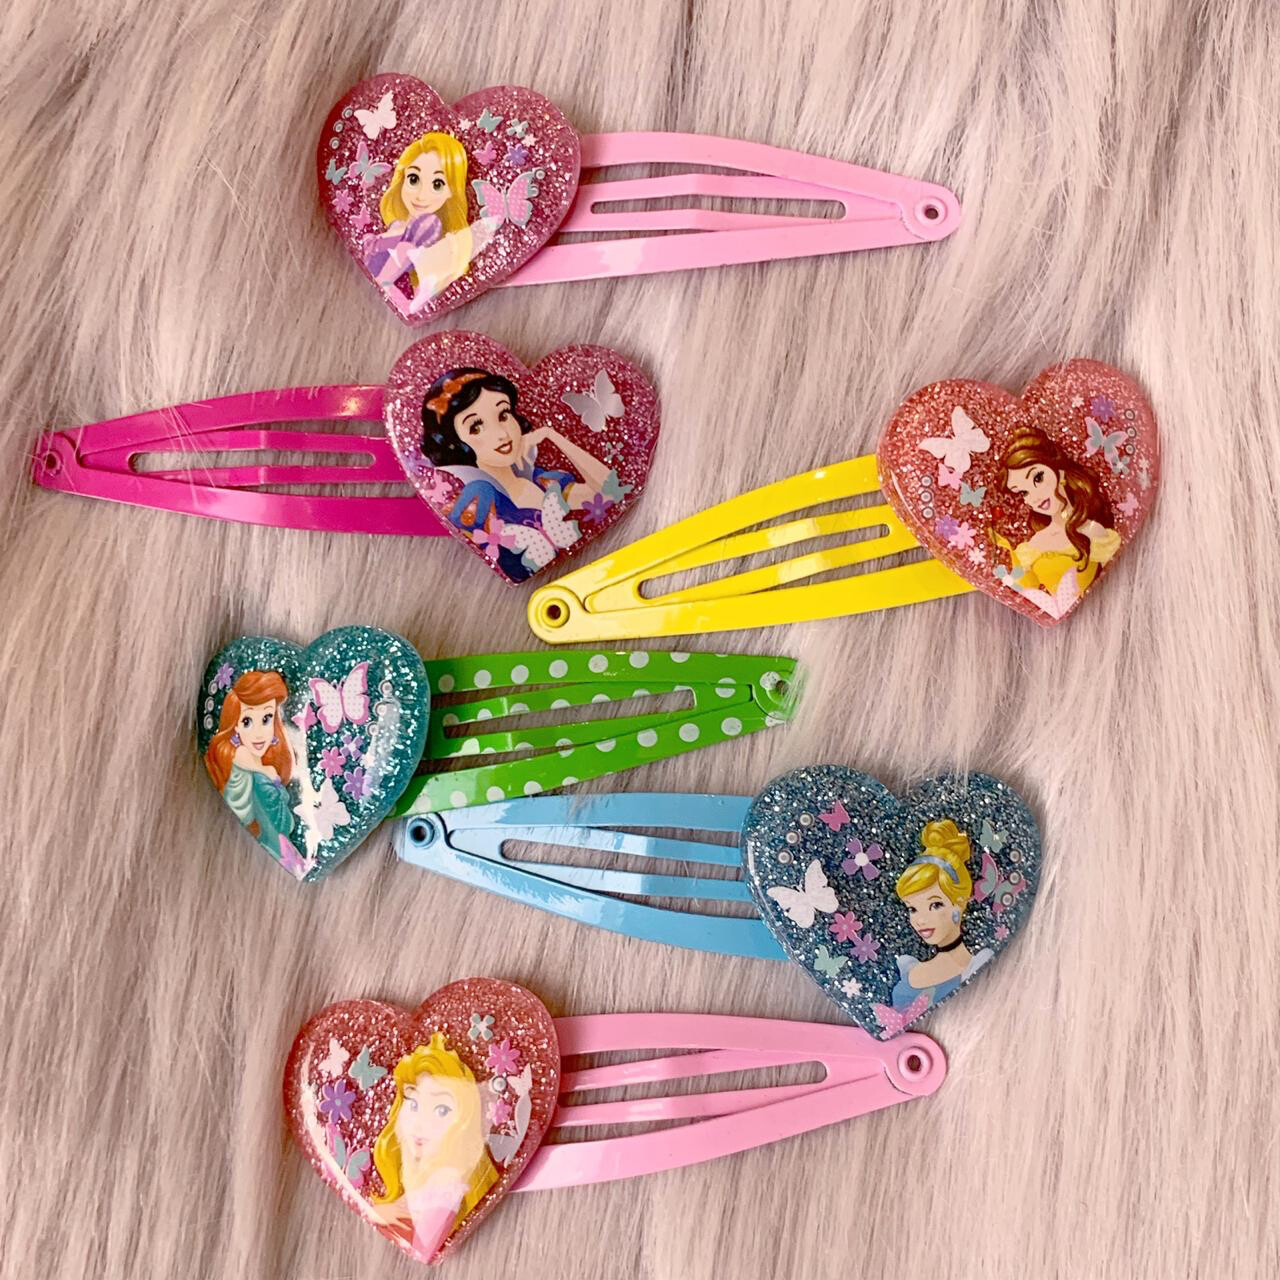 PRINCESS HAIR CLIPS 6 PZAS.